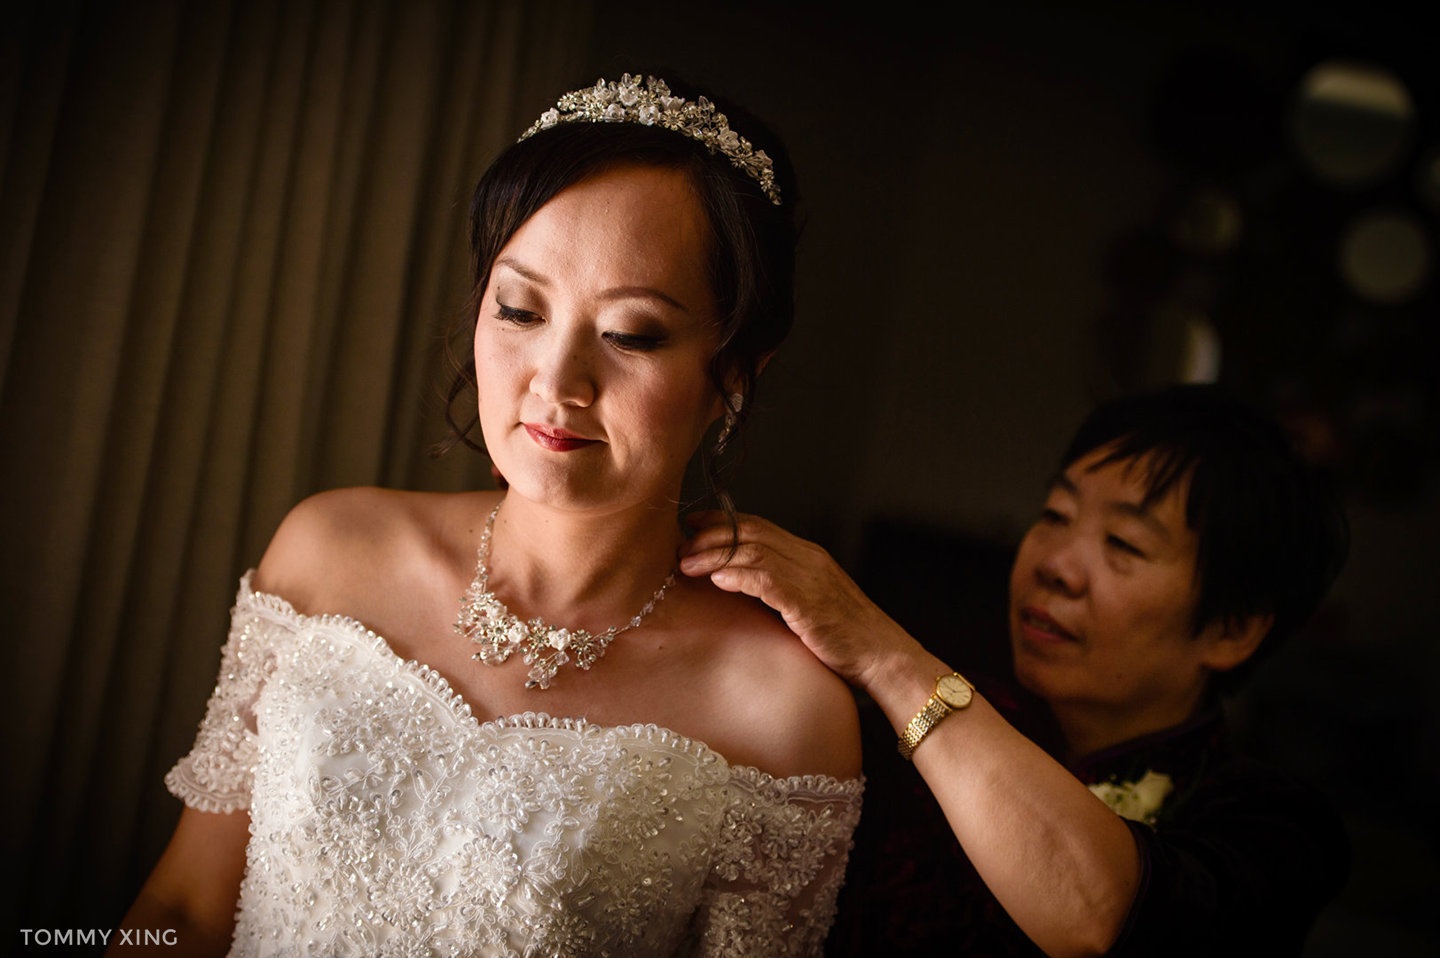 Paradise Point Resort Wedding Xiaolu & Bin San Diego 圣地亚哥婚礼摄影跟拍 Tommy Xing Photography 洛杉矶婚礼婚纱照摄影师 045.jpg